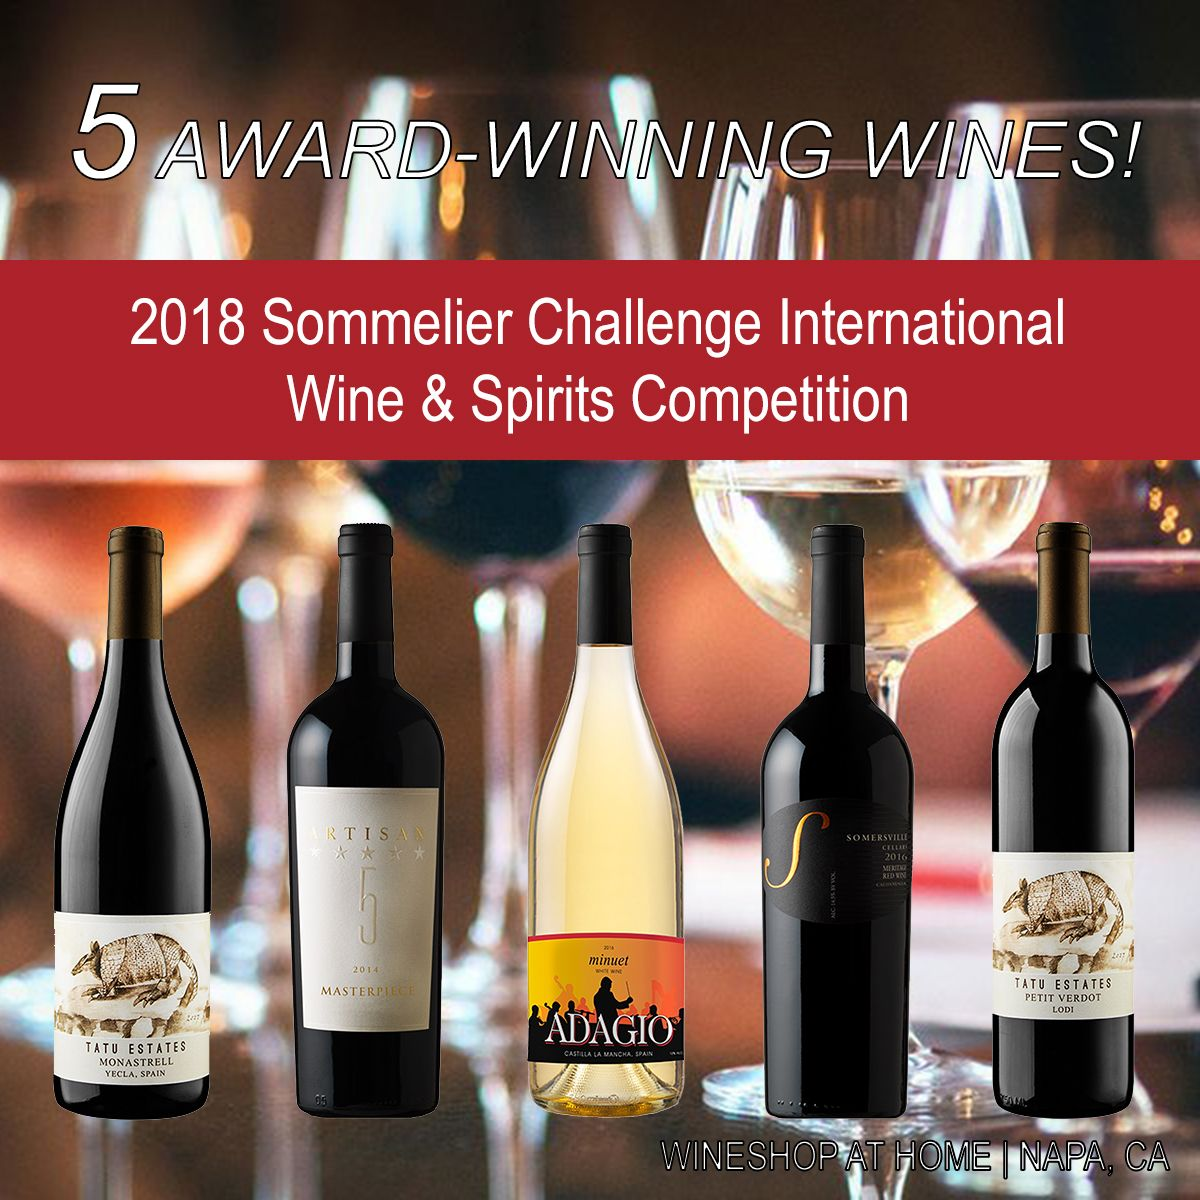 Raise Your Glass And Celebrate With Us Wineshop At Home Won 5 Awards At The 2018 Sommelier Challenge Int L Wine Spirits Com Wine And Spirits Sommelier Wine